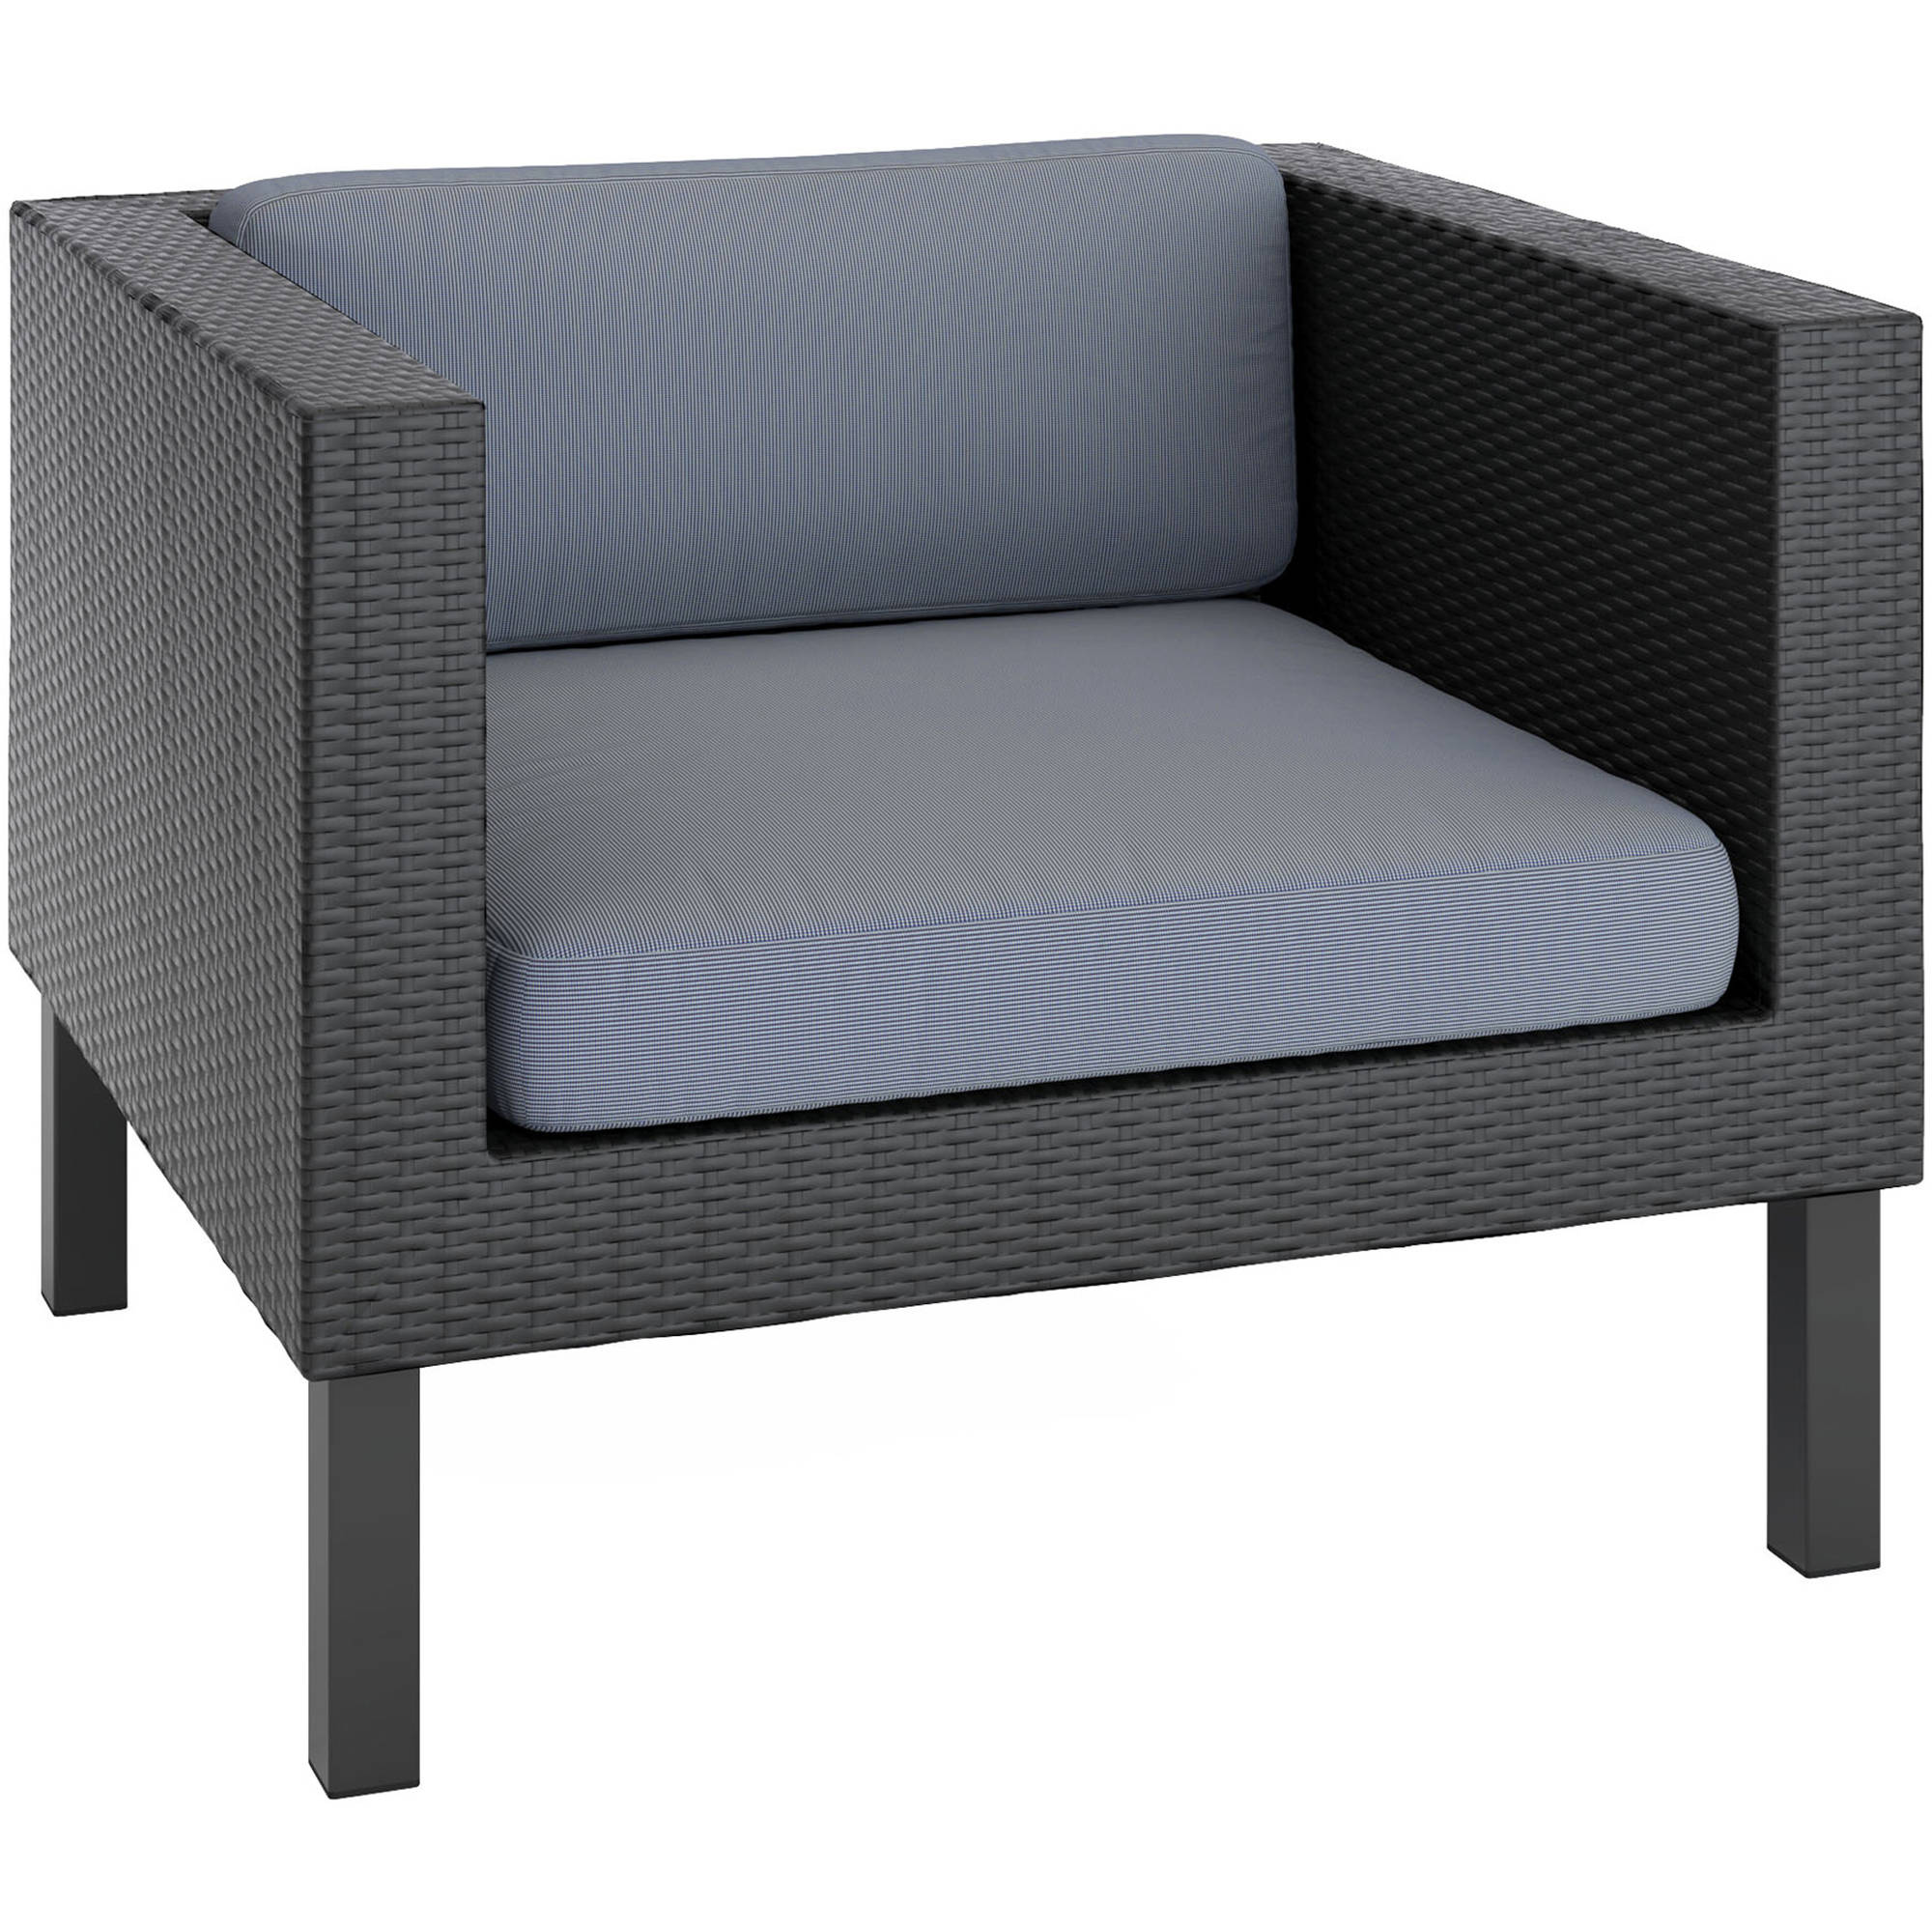 CorLiving Oakland Patio Chair, Textured Black Weave